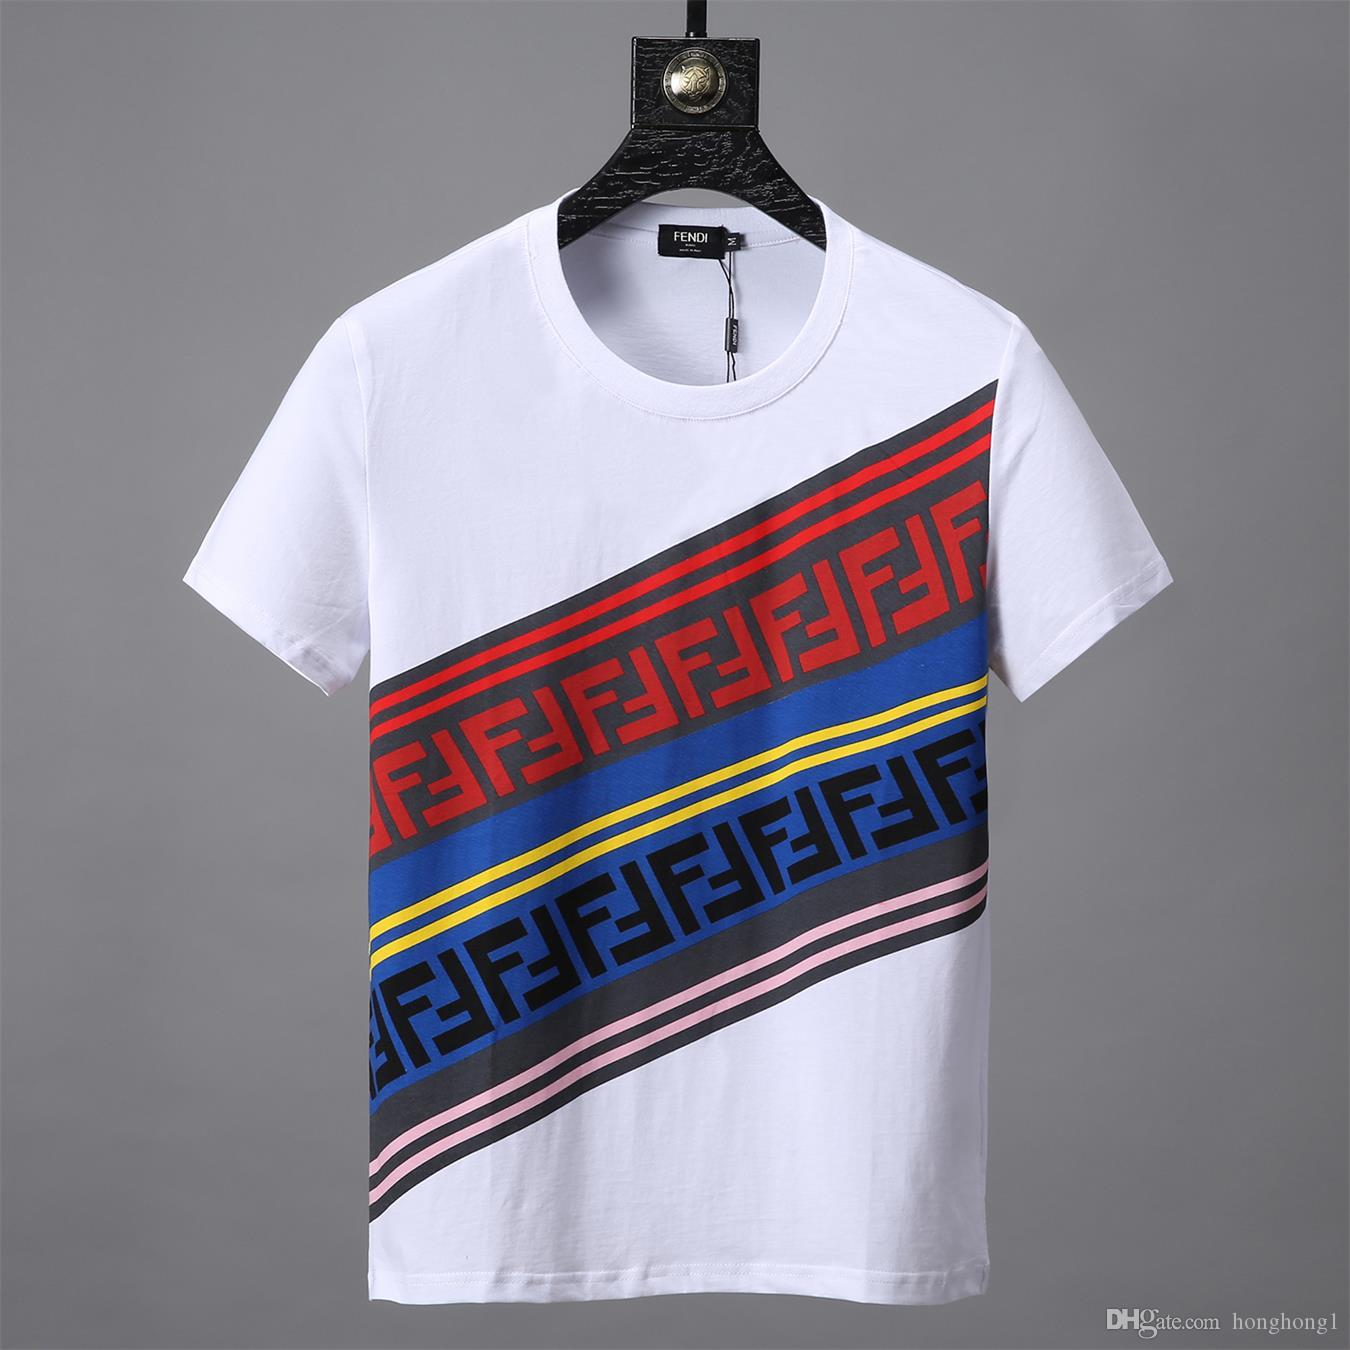 06e7f2134ff 2019 Best Sellers Mens Designer T-shirts Summer New Letter Pattern Printing T-shirt  Men Luxury Shirt. 2 T-shirt Online with  33.41 Piece on Honghong1 s ...